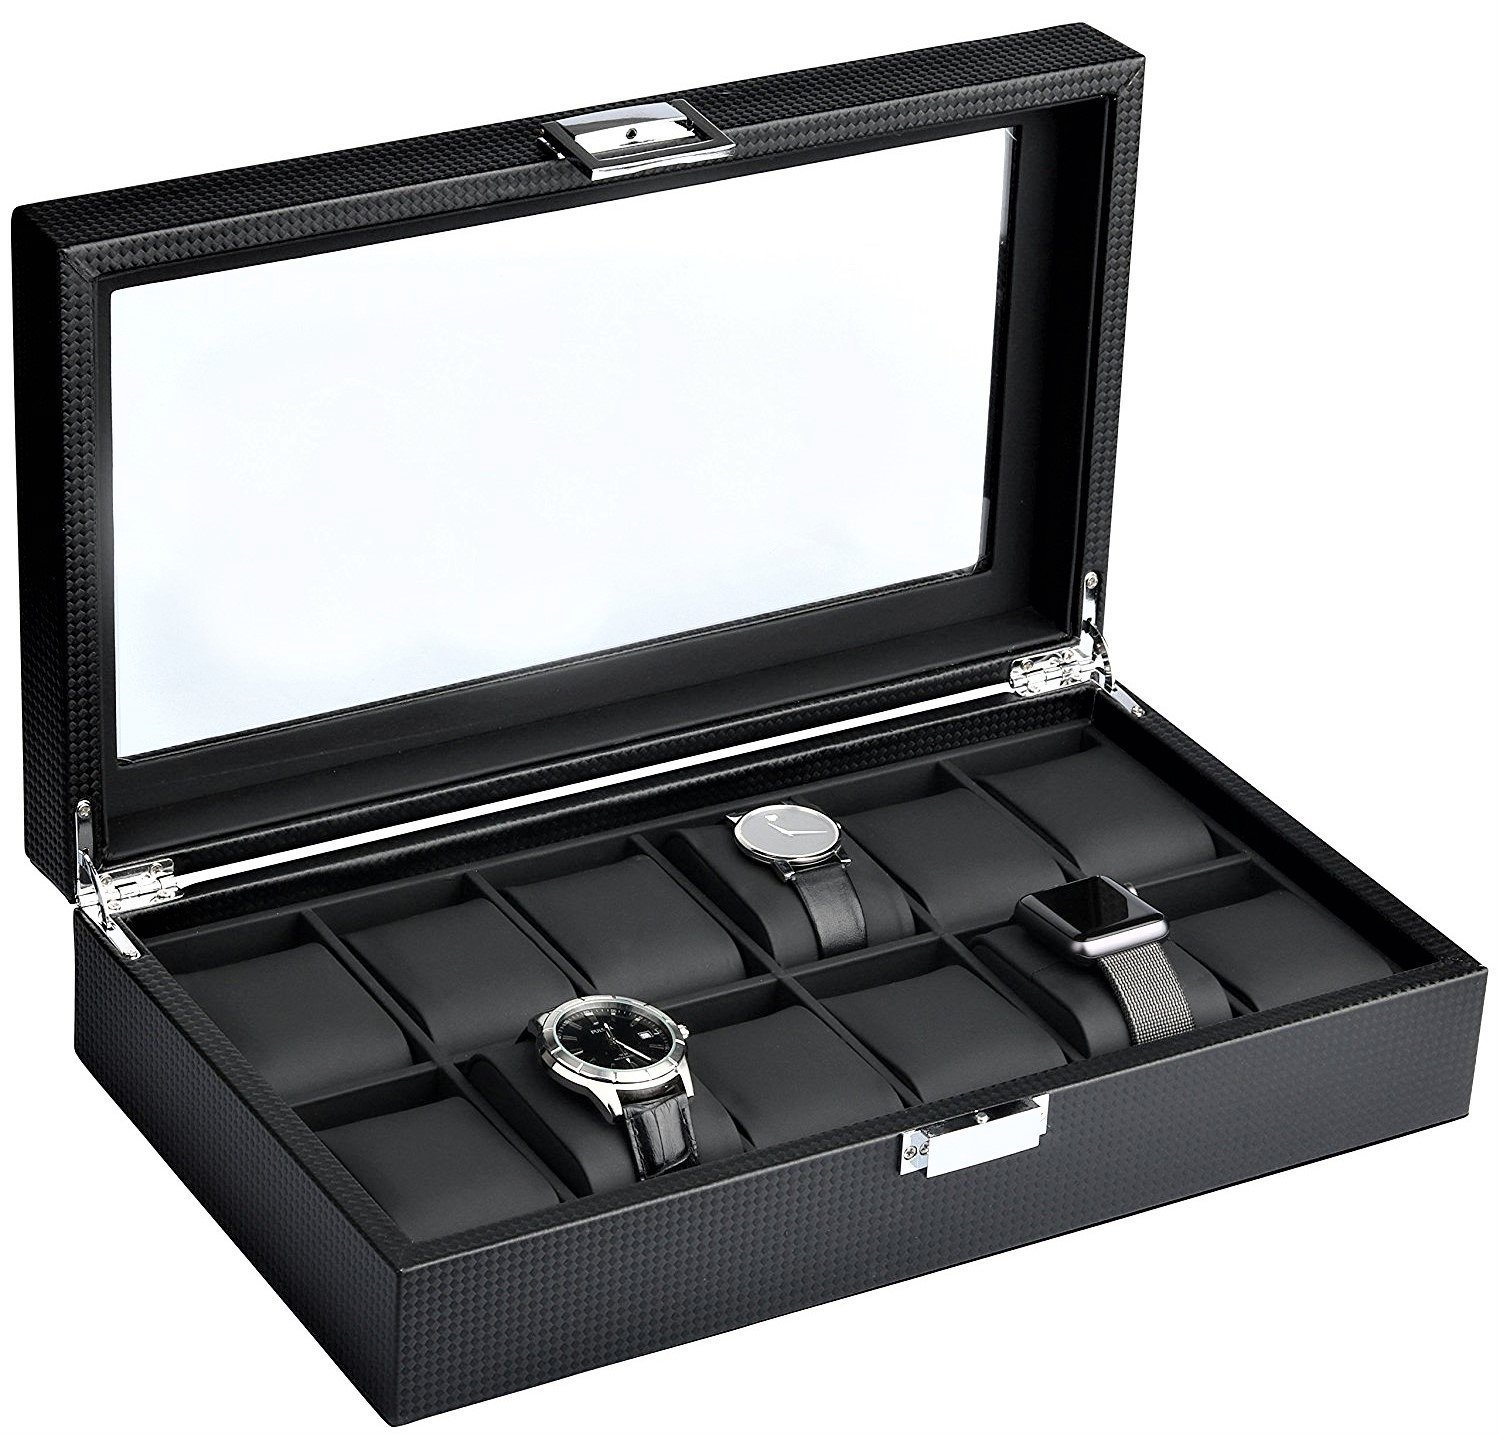 Mantello 12-Watch Display Box Carbon Fiber Design with Glass Top by Mantello